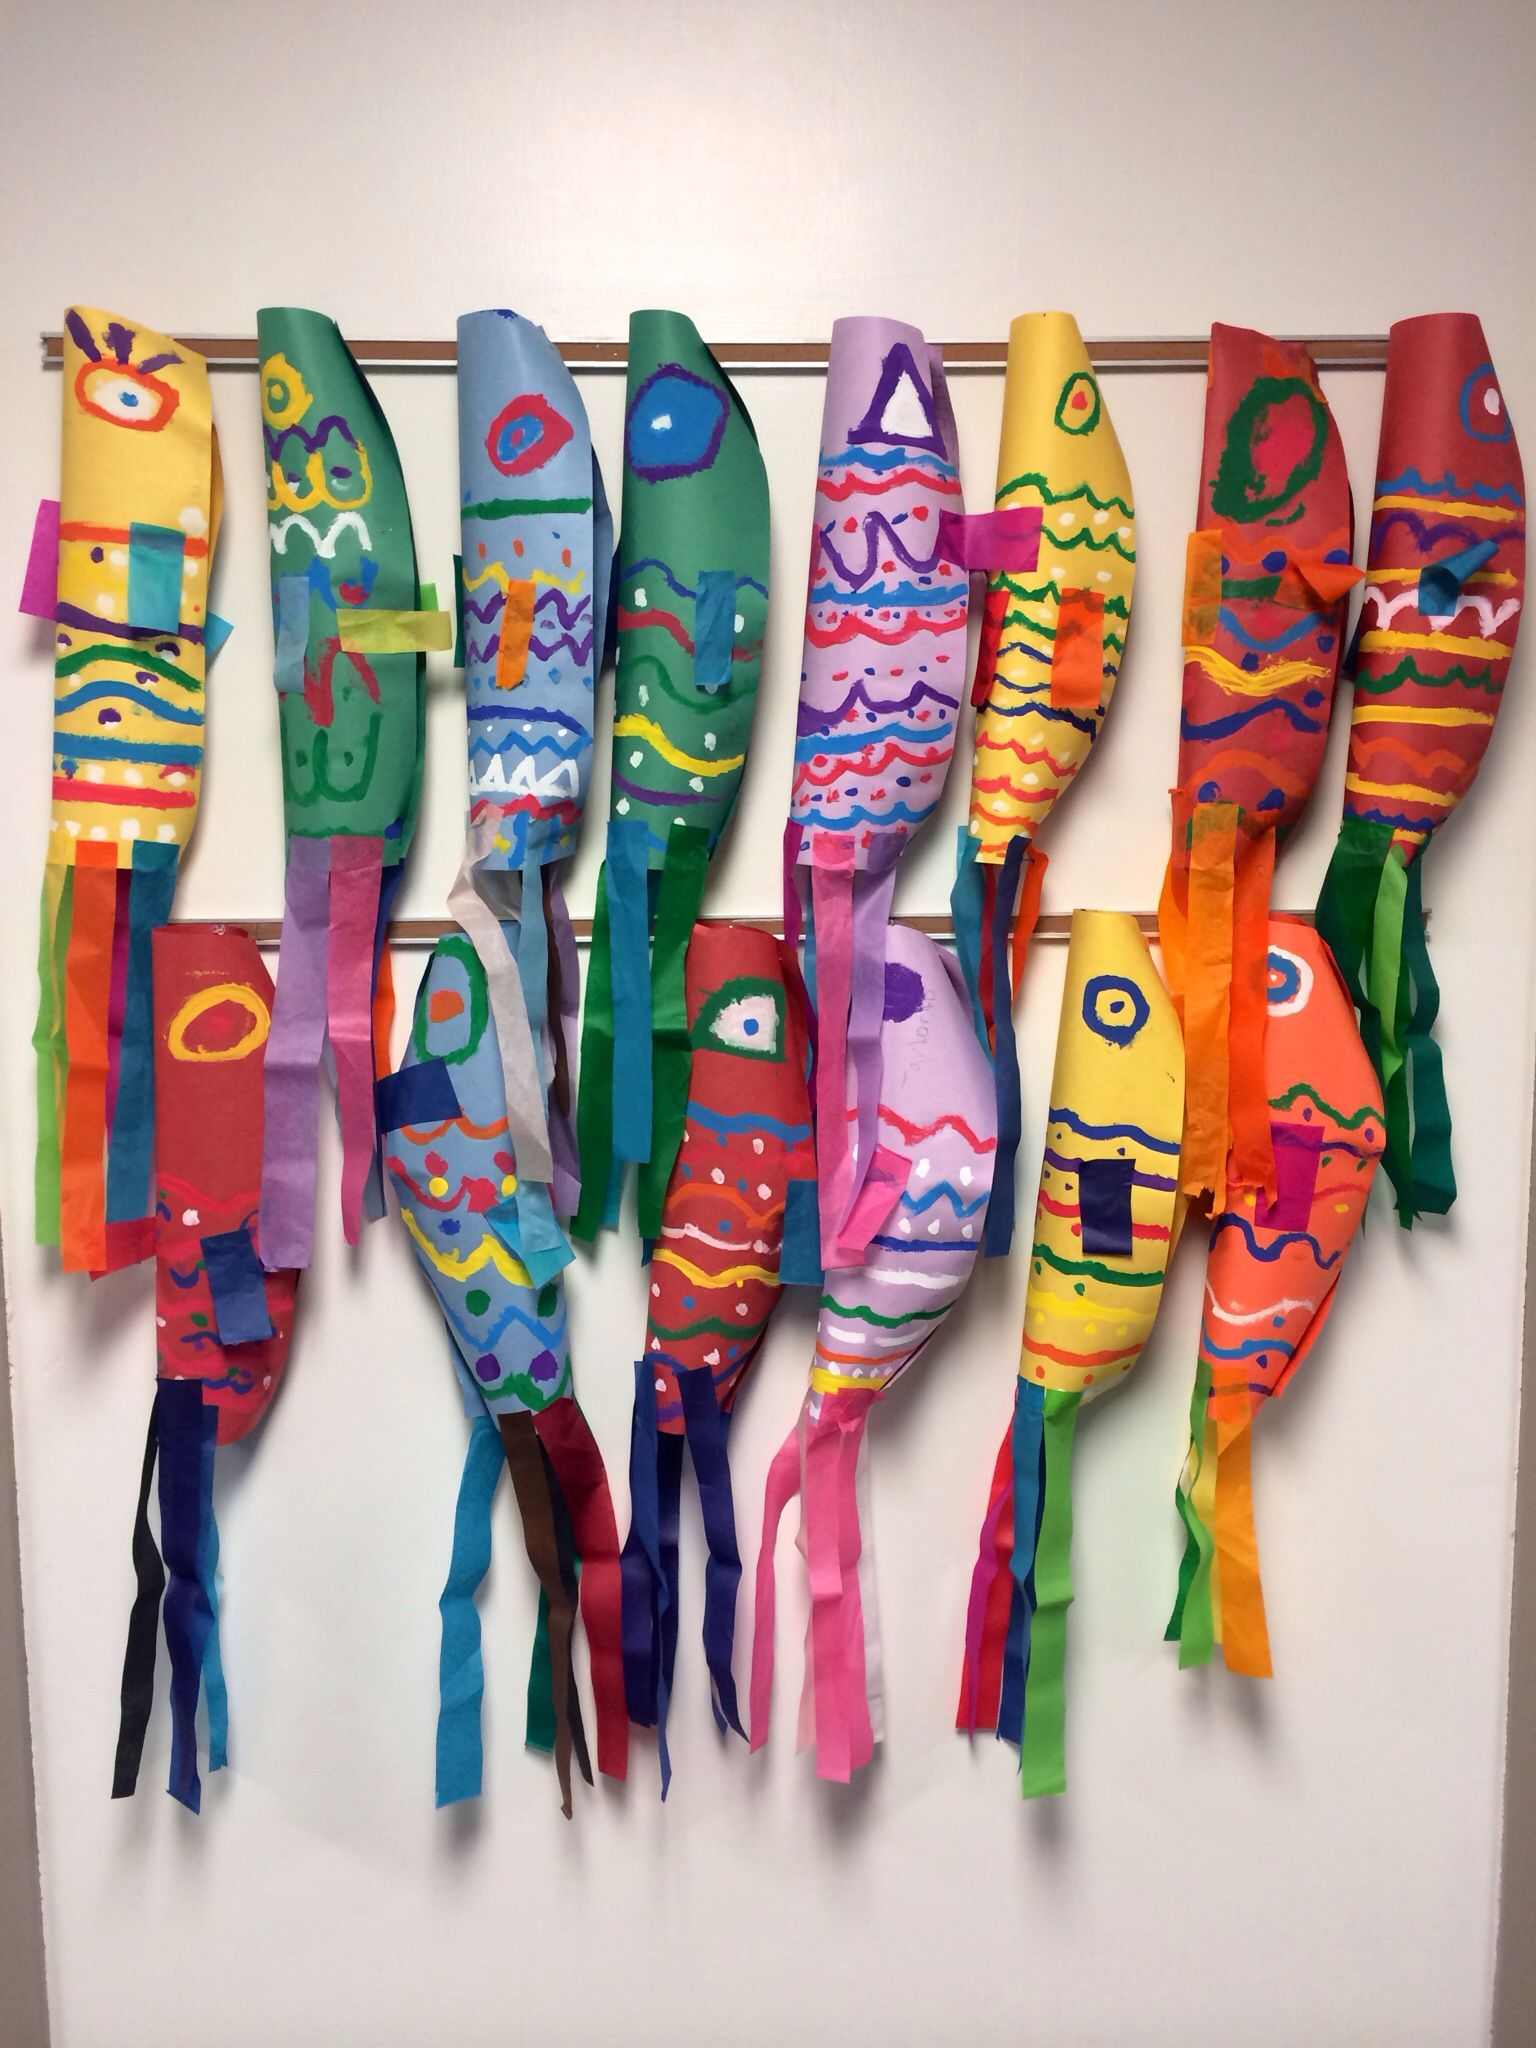 Color in japanese art - Elementary Art Project Japanese Koinobori Culture Carp Streamers Painting